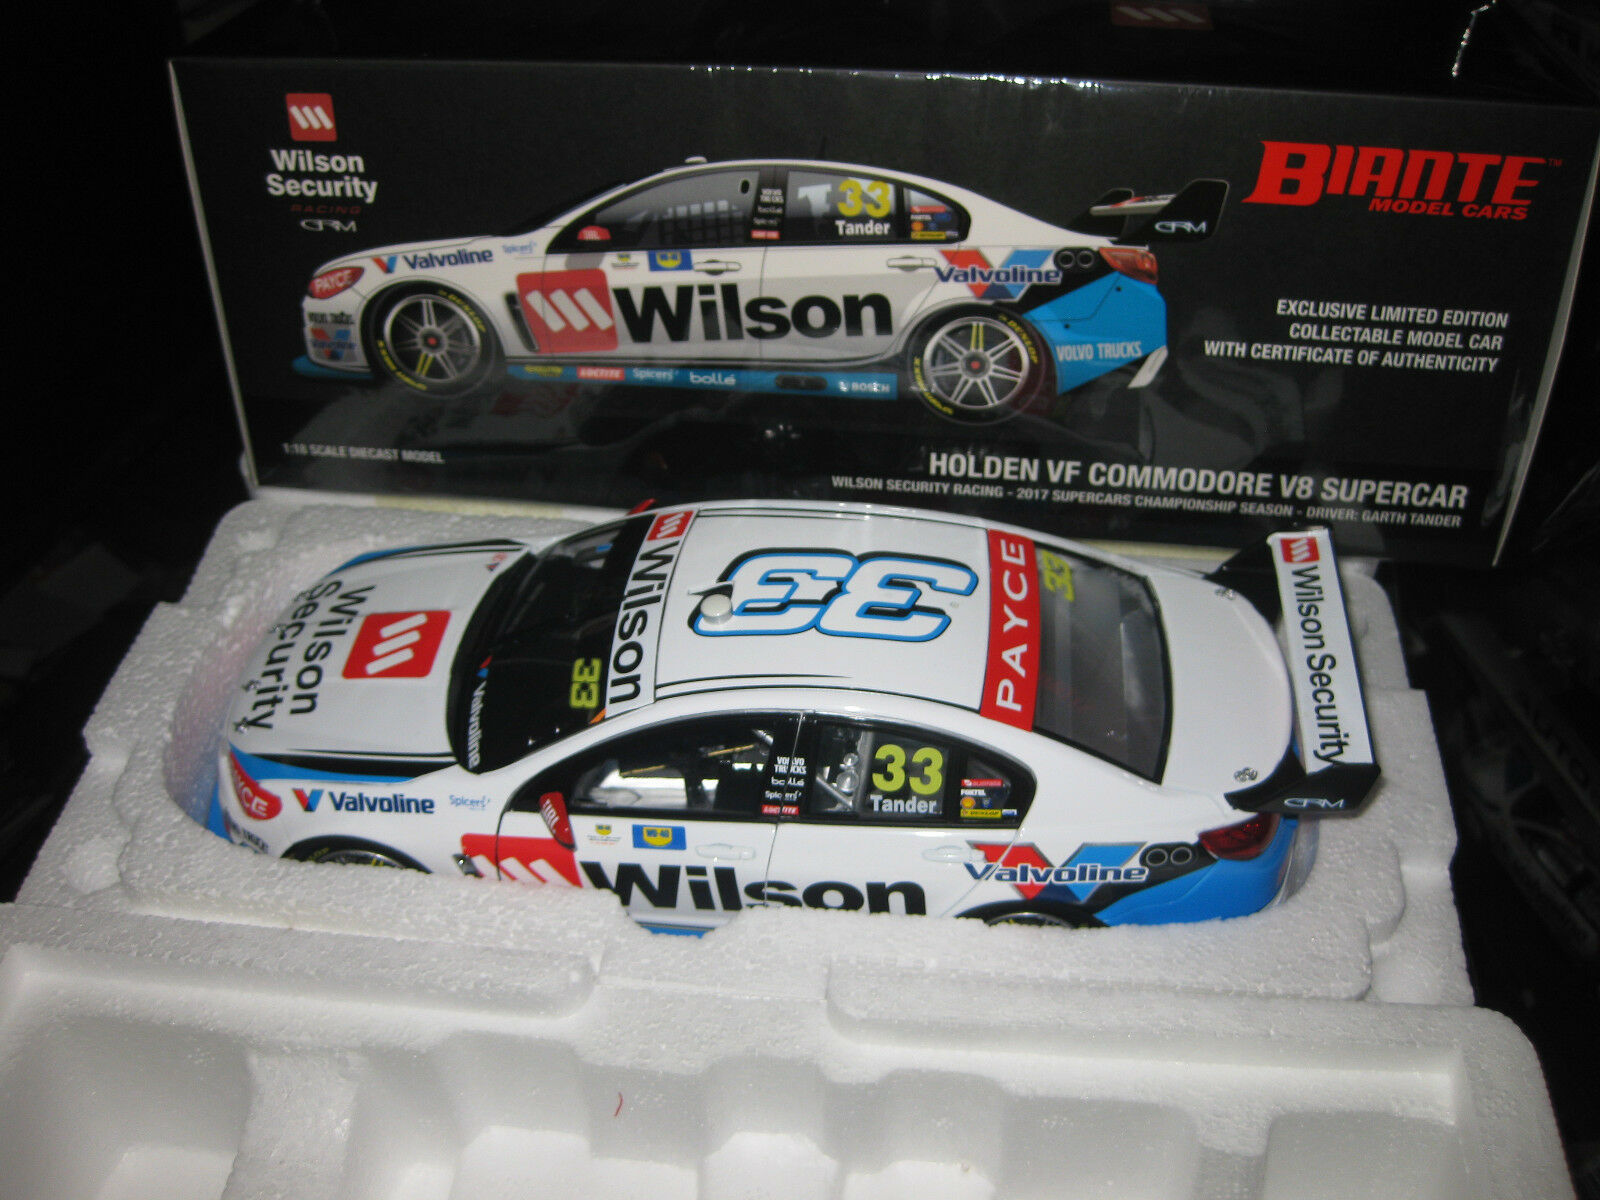 BIANTE 1 18 G TANDER HOLDEN COMMODORE 2017 V8 SUPERCAR GRM  33 WILSON SECURITY